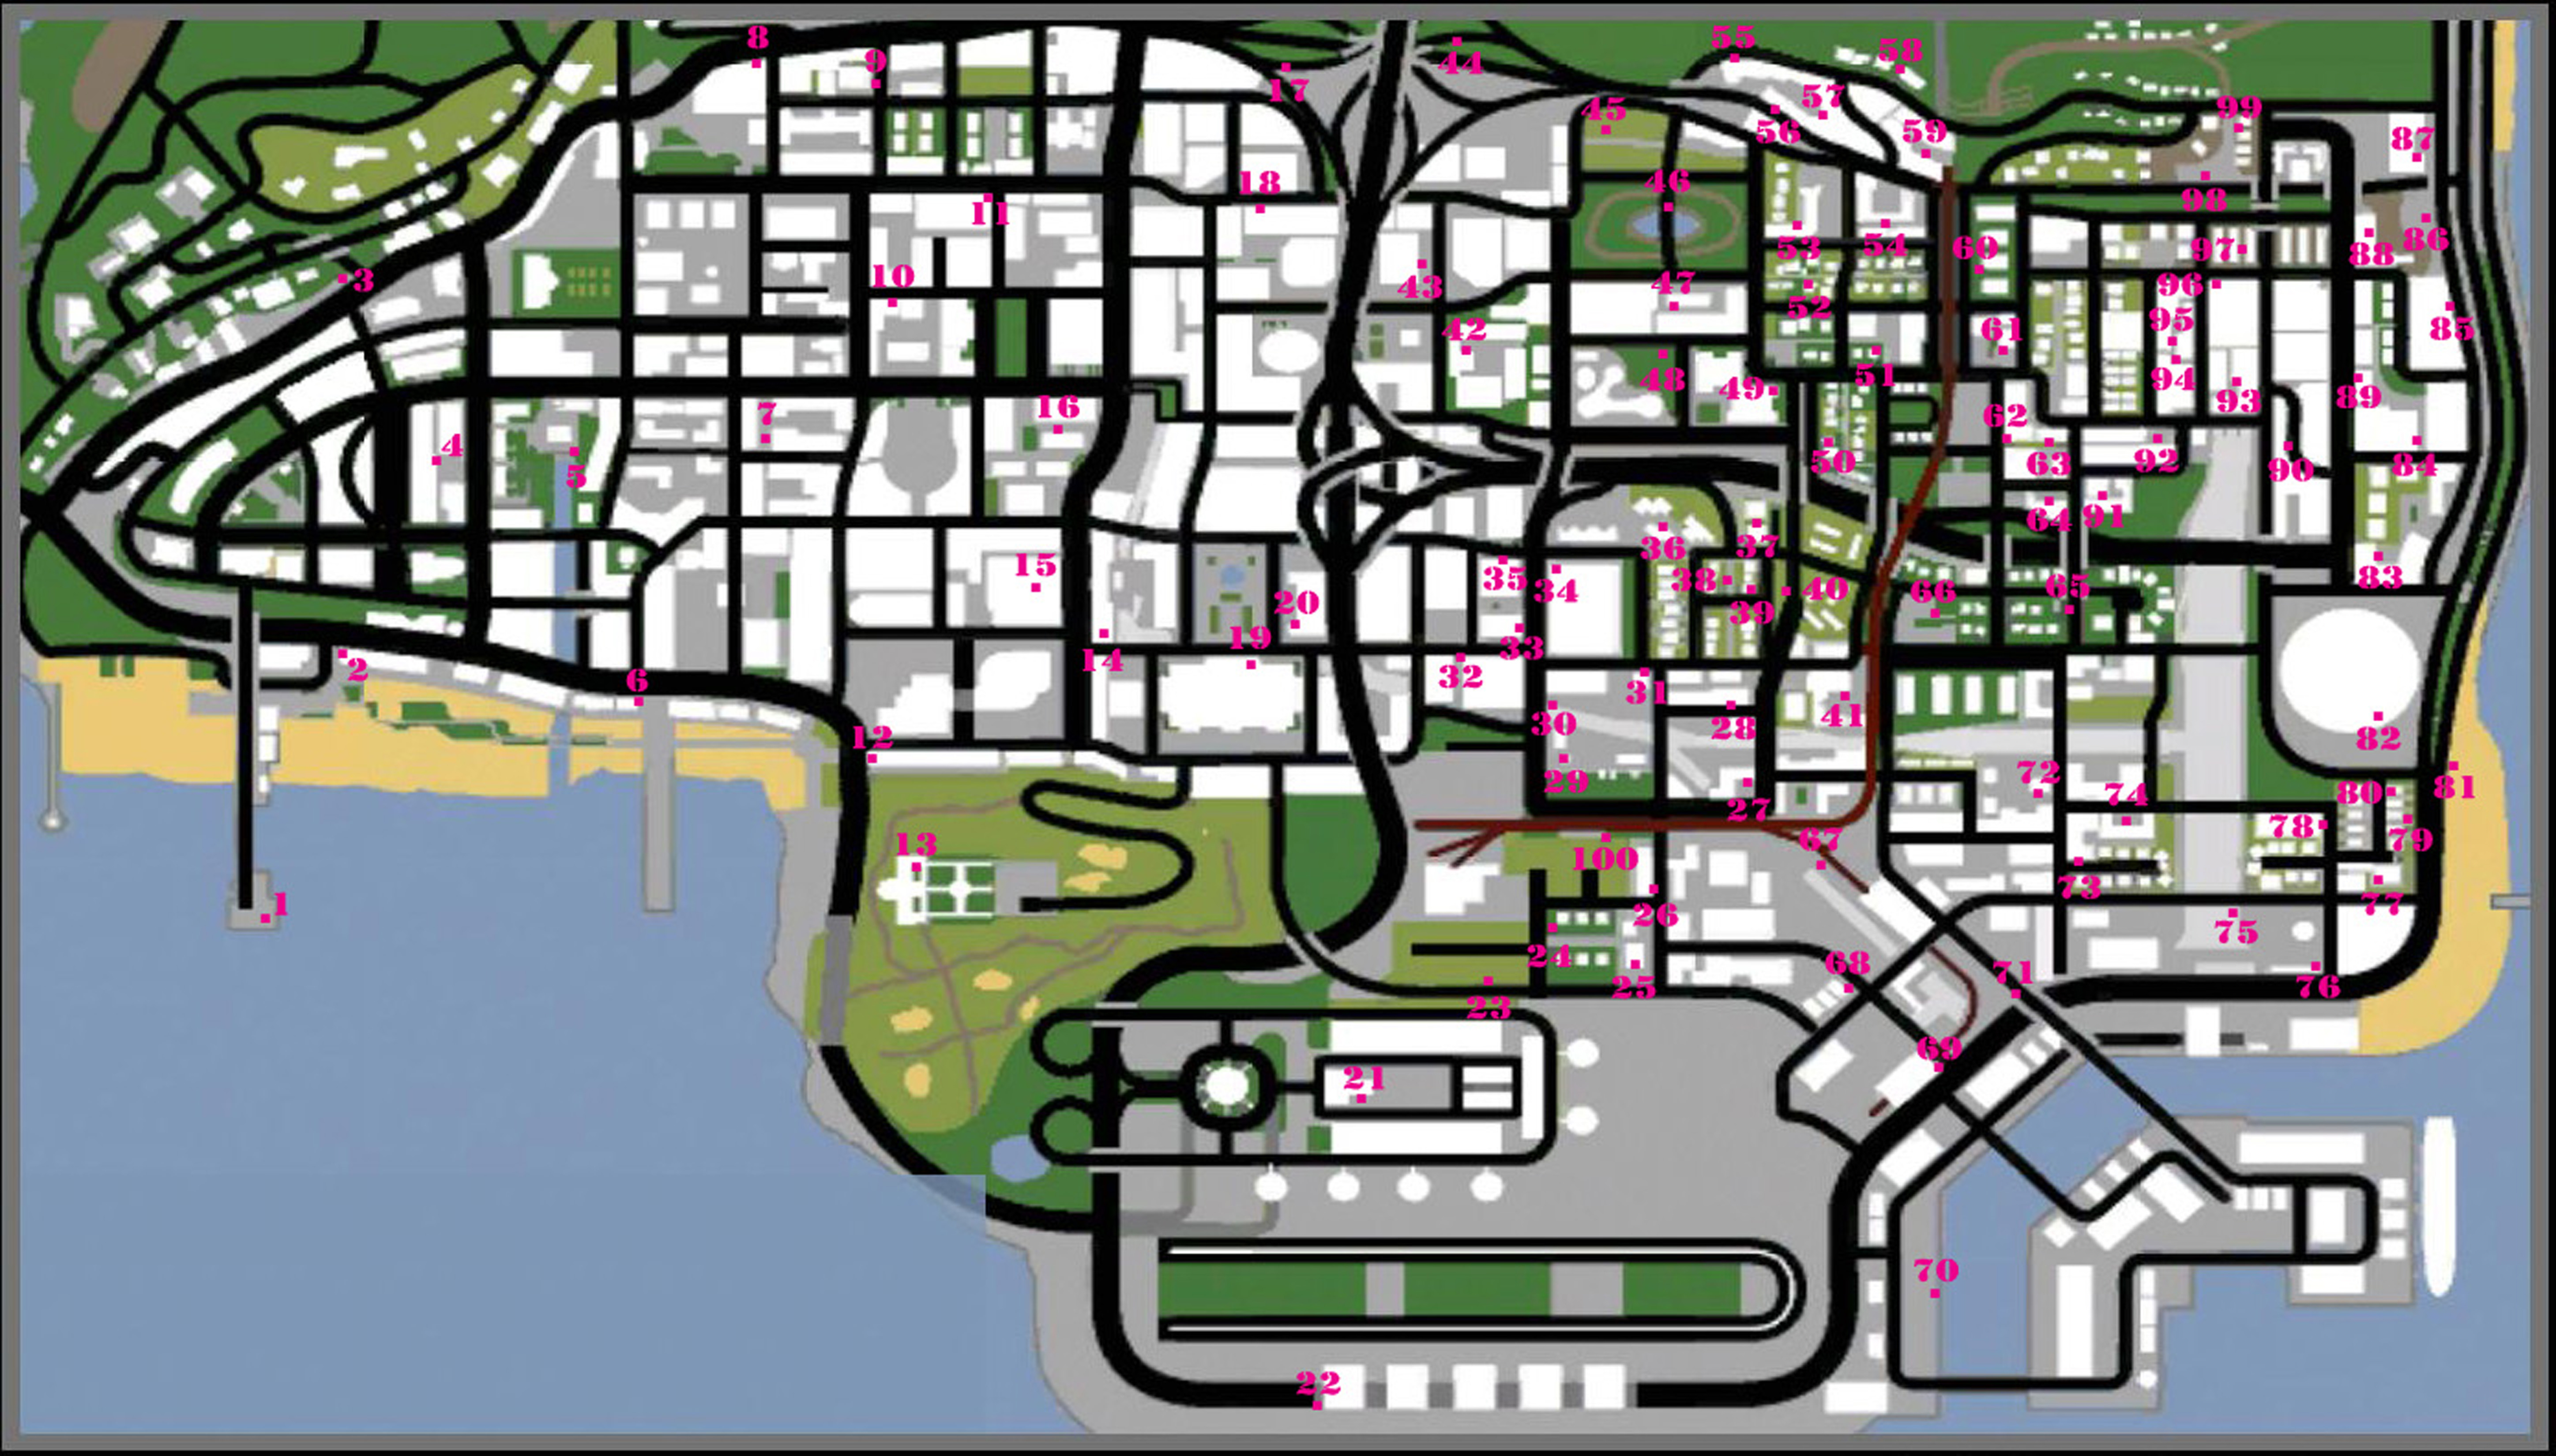 There are 100 gang tags located throughout los santos – finding and